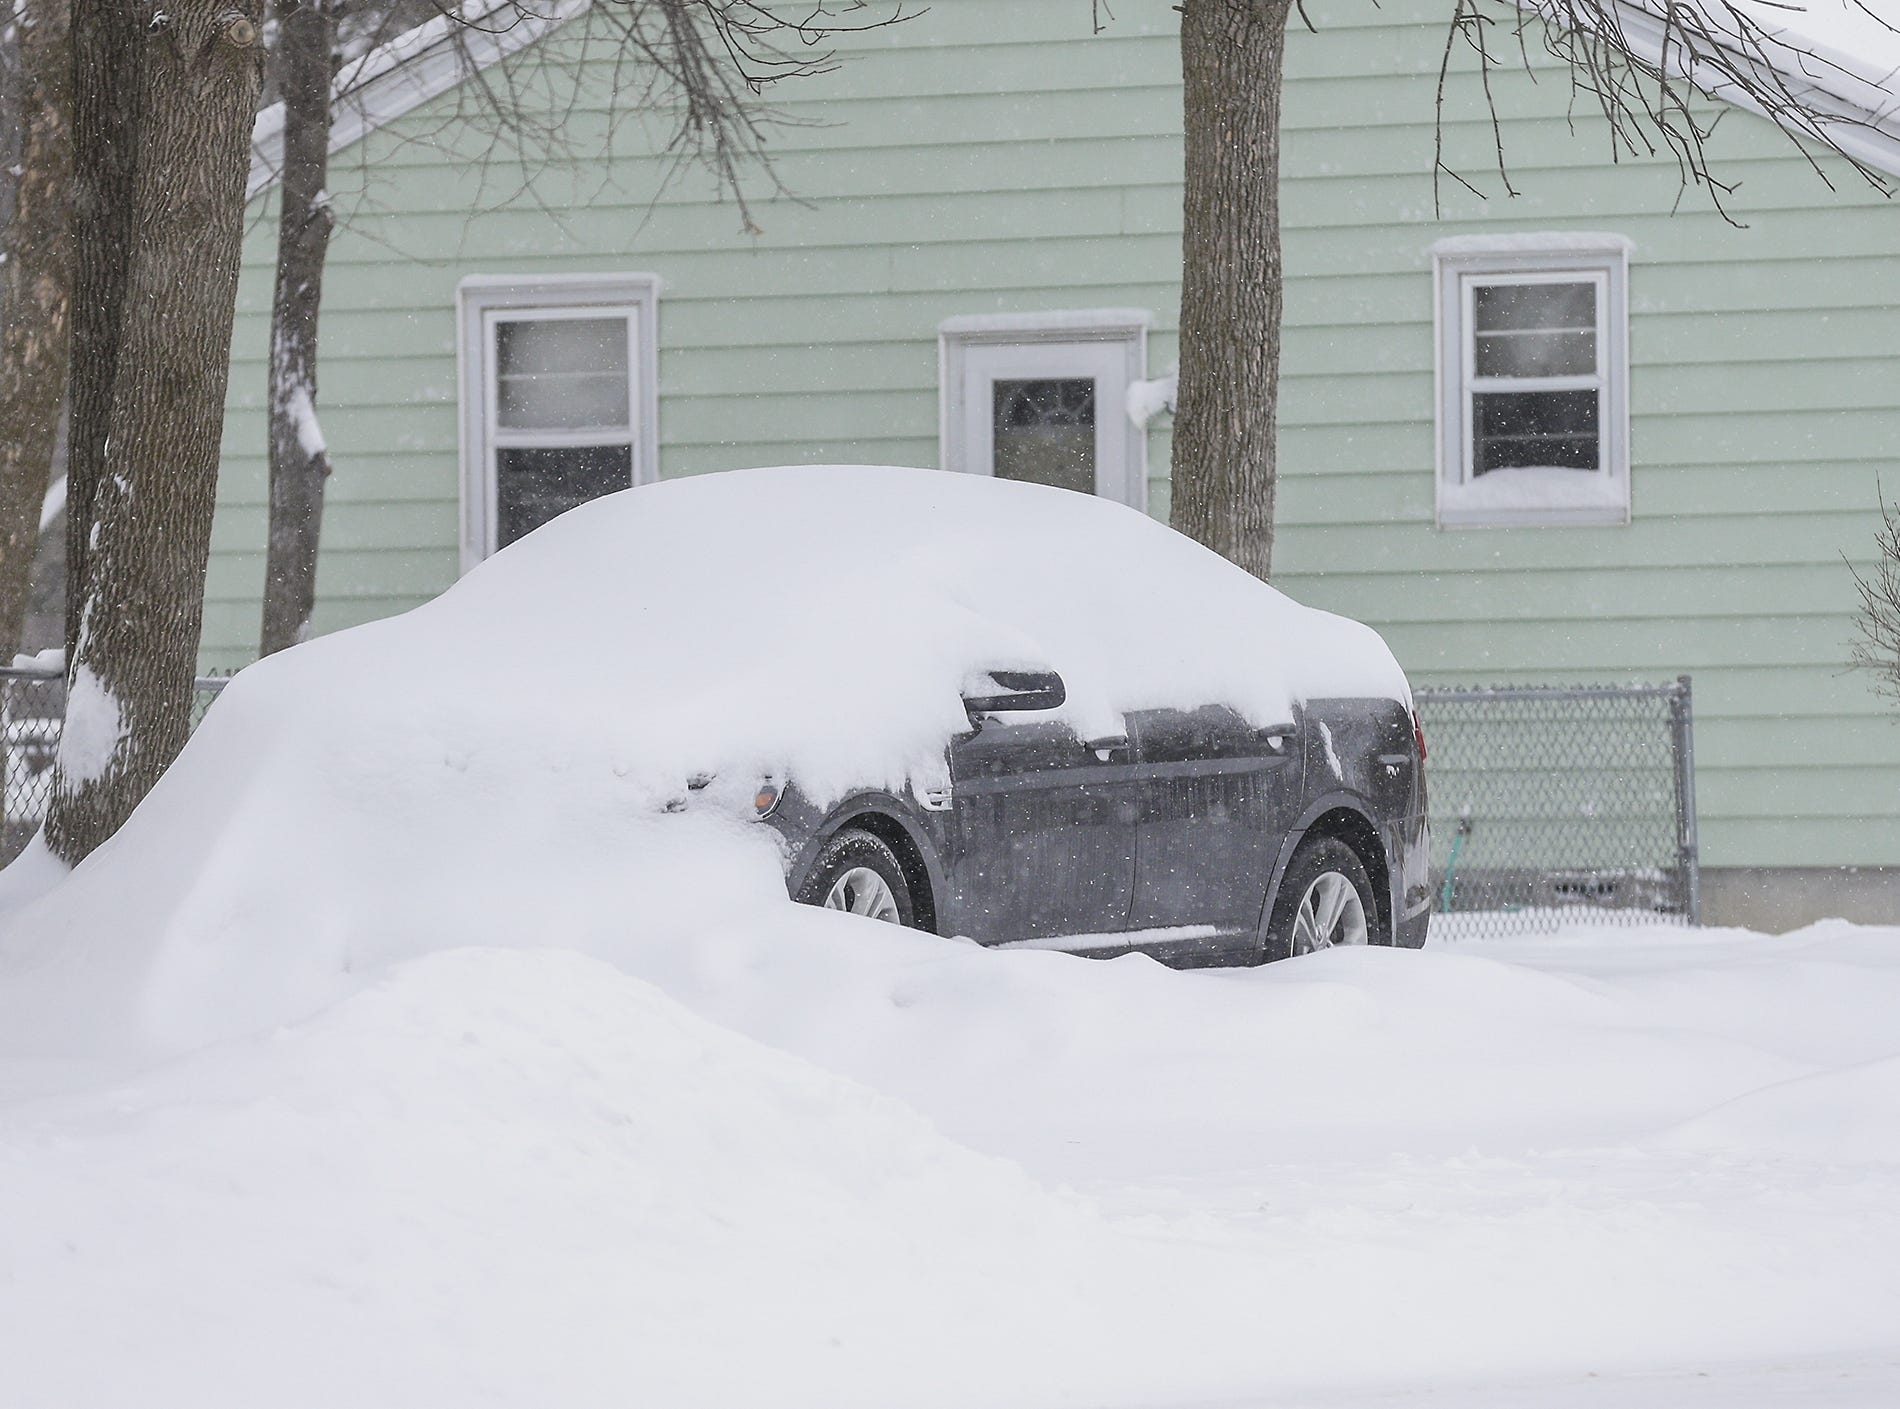 A car is partialy burried in snow Monday, Jan. 28, 2019, in Fond du Lac during a snow storm that hampered travel and closed businesses and schools in the Fond du Lac area. This was the Fond du Lac area's second snow storm in five days.